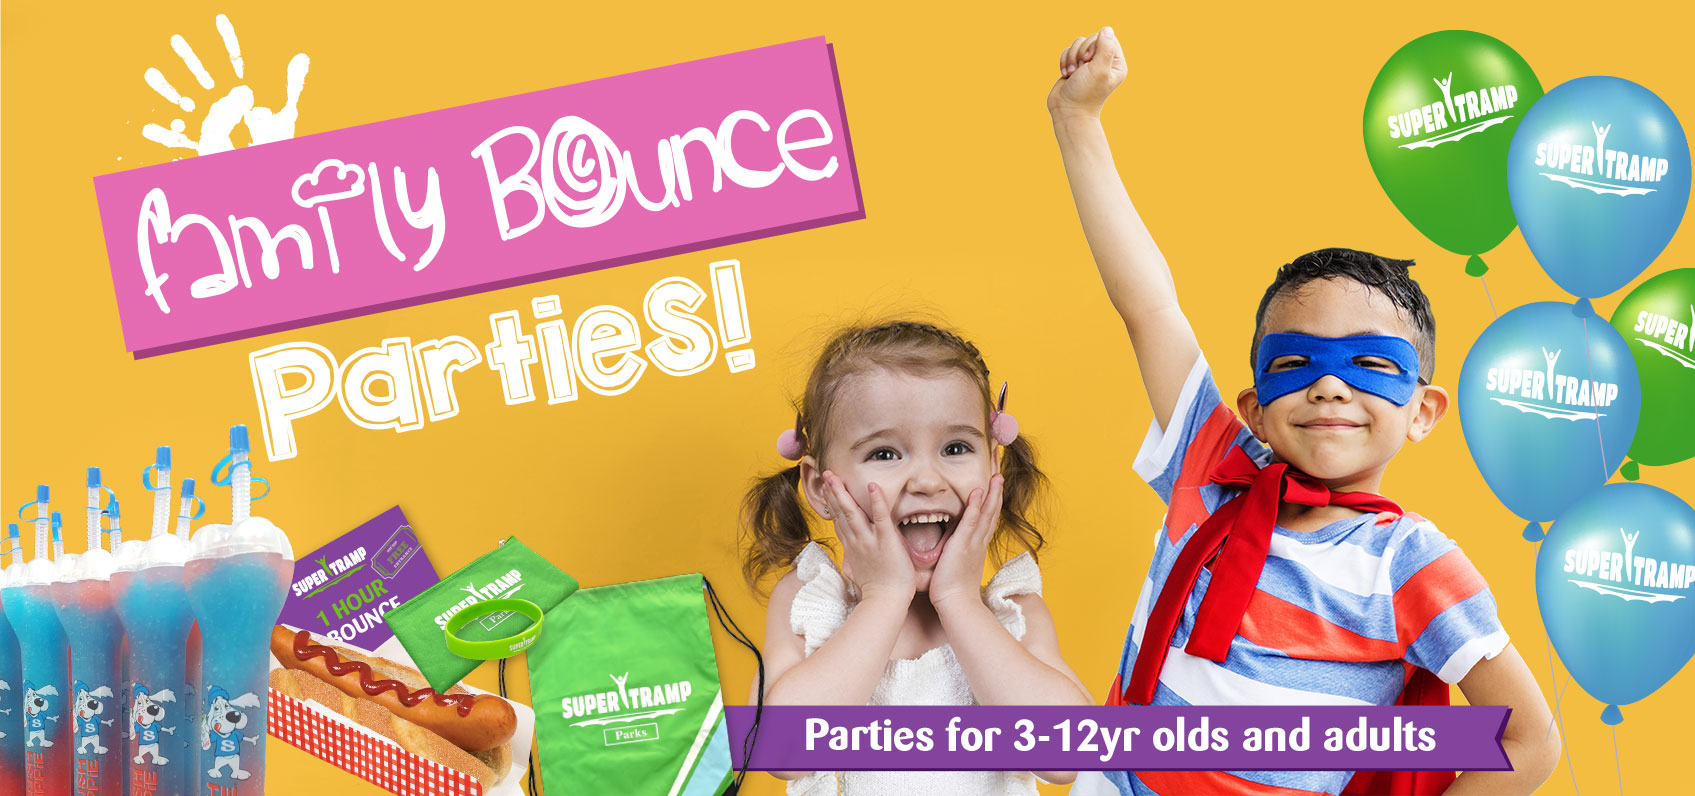 fam-bounce-parties-sts.jpg